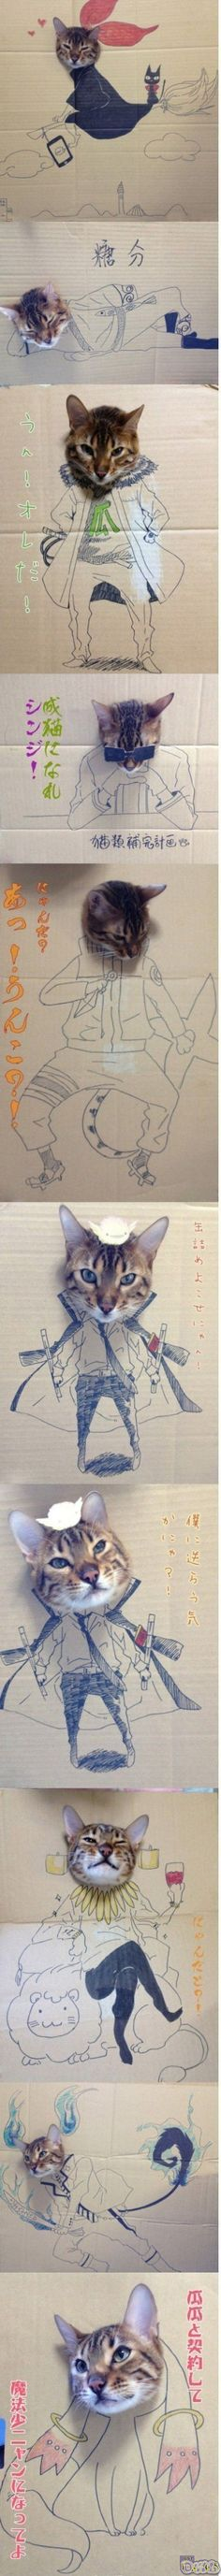 Awesome cat illustration. I have no idea what it says; but the drawings are awesome!